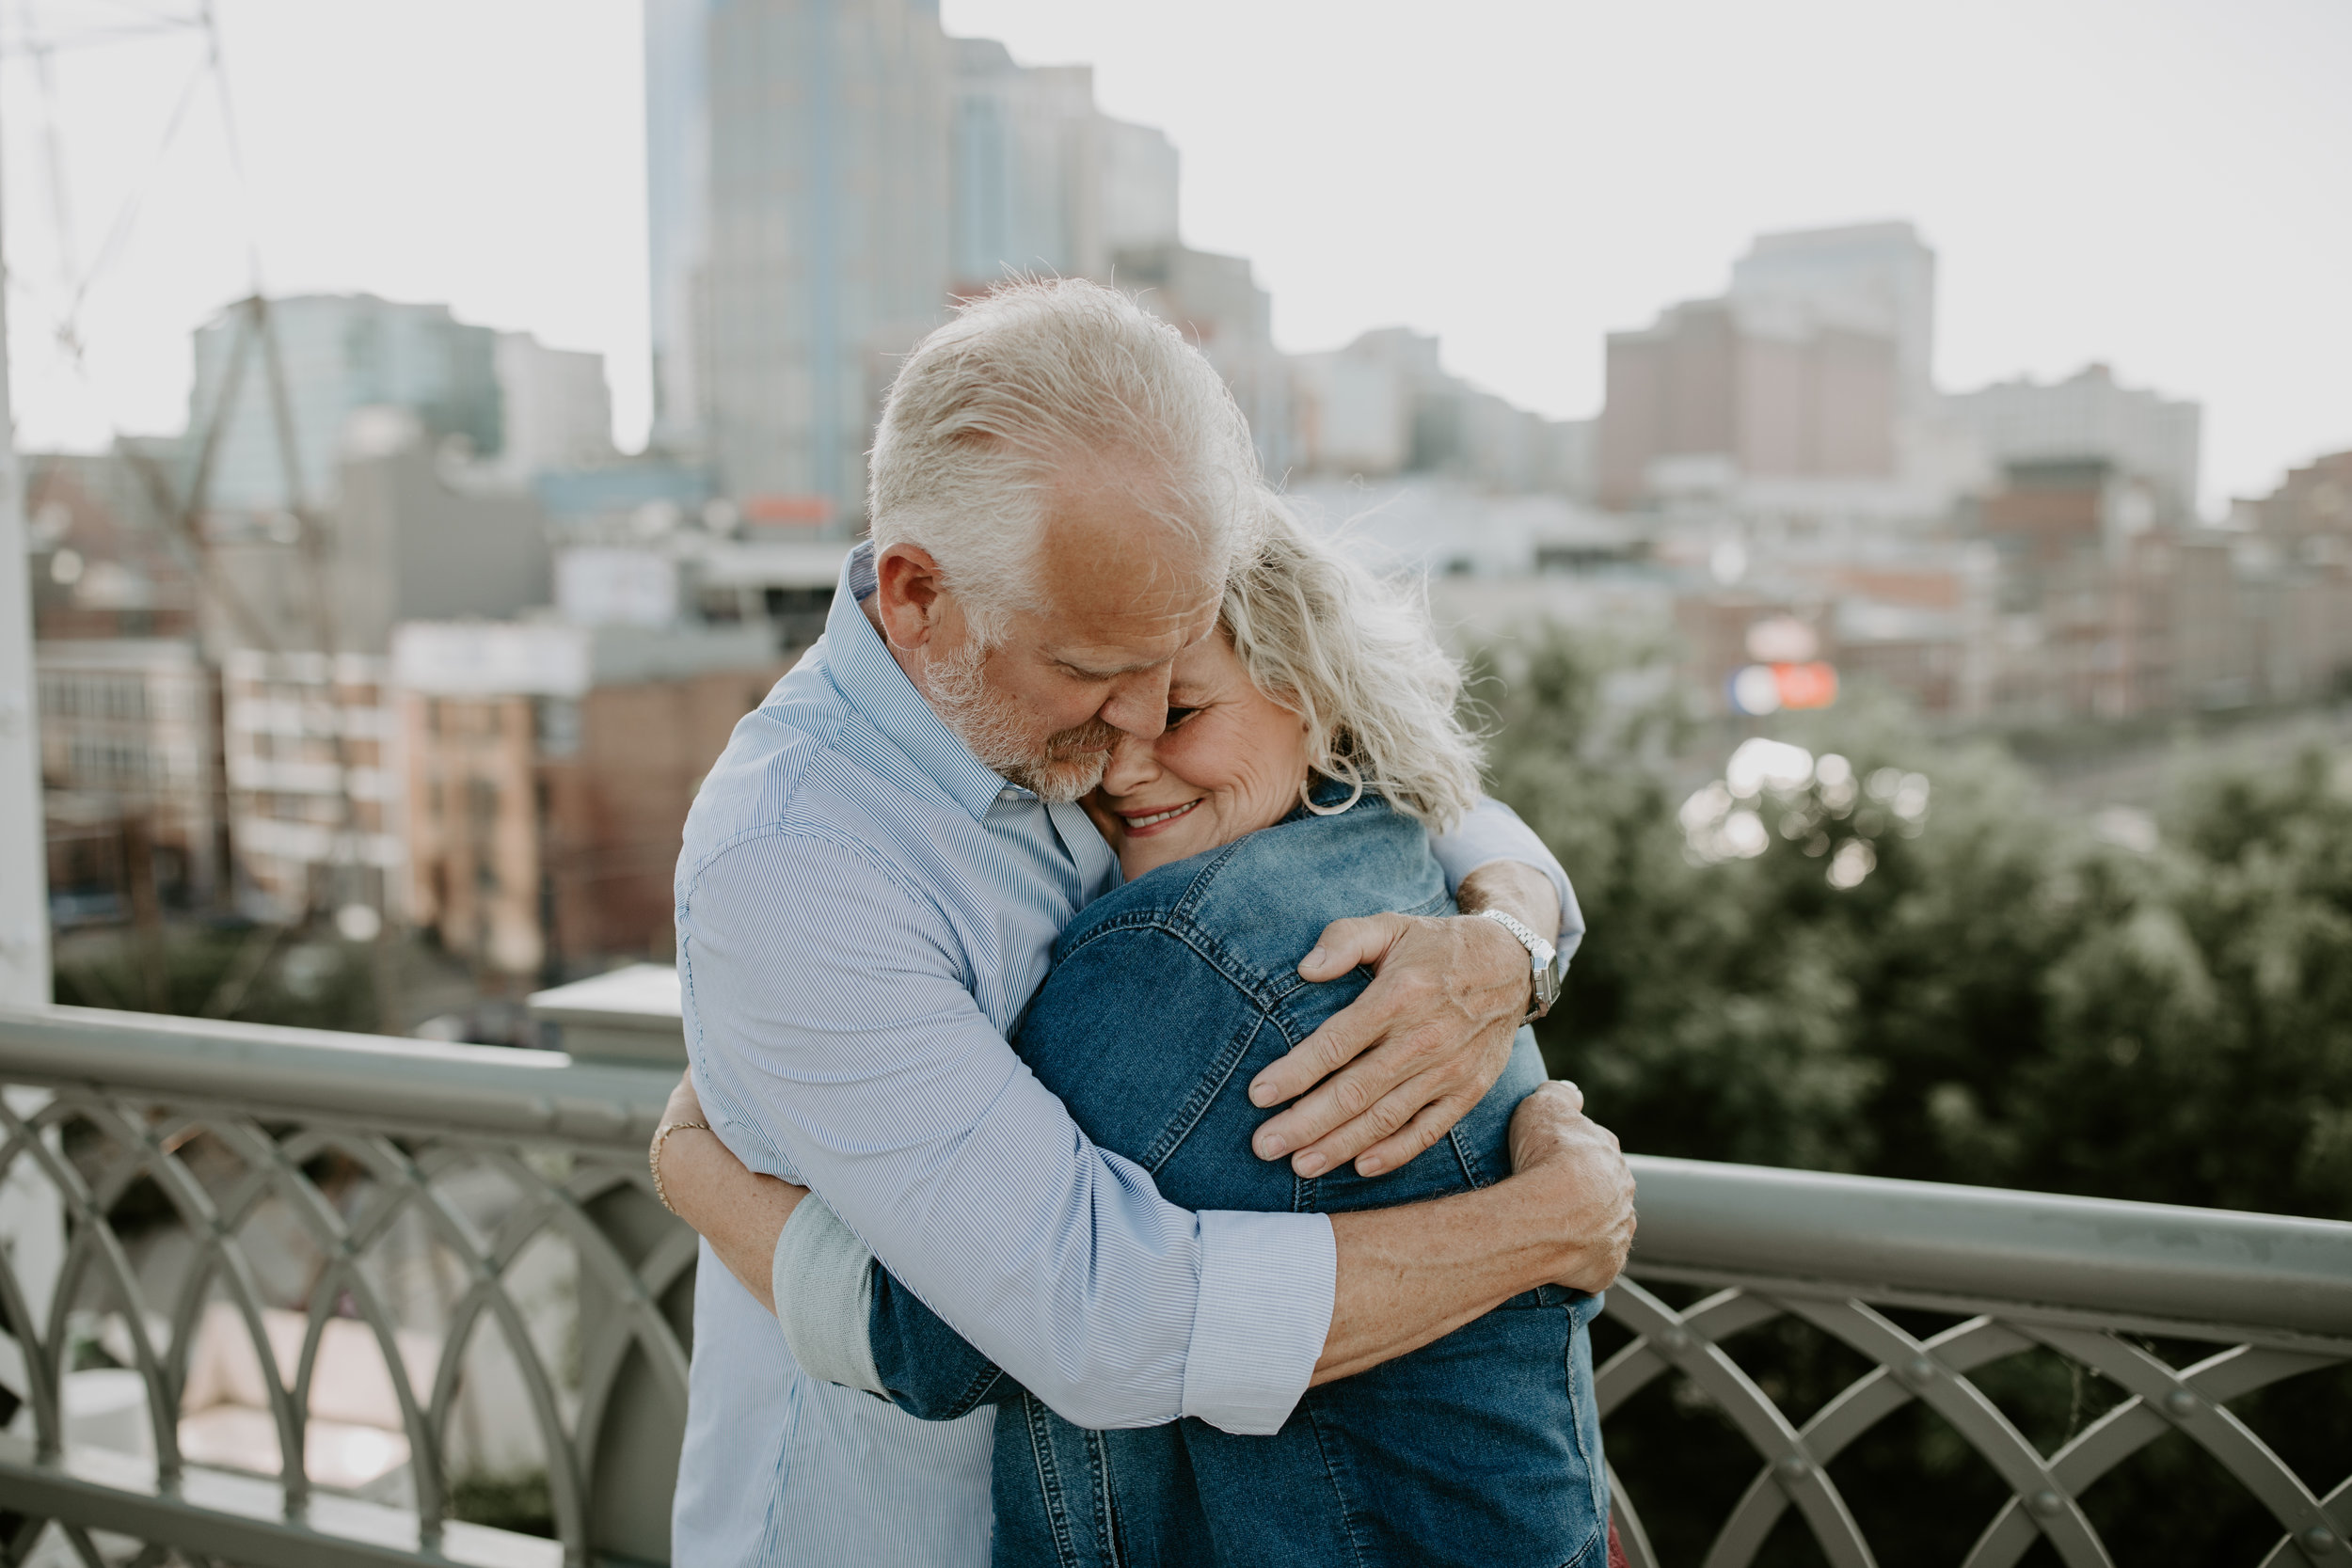 Couples Session with older couple at Pedestrian Bridge in Downtown, Nashville